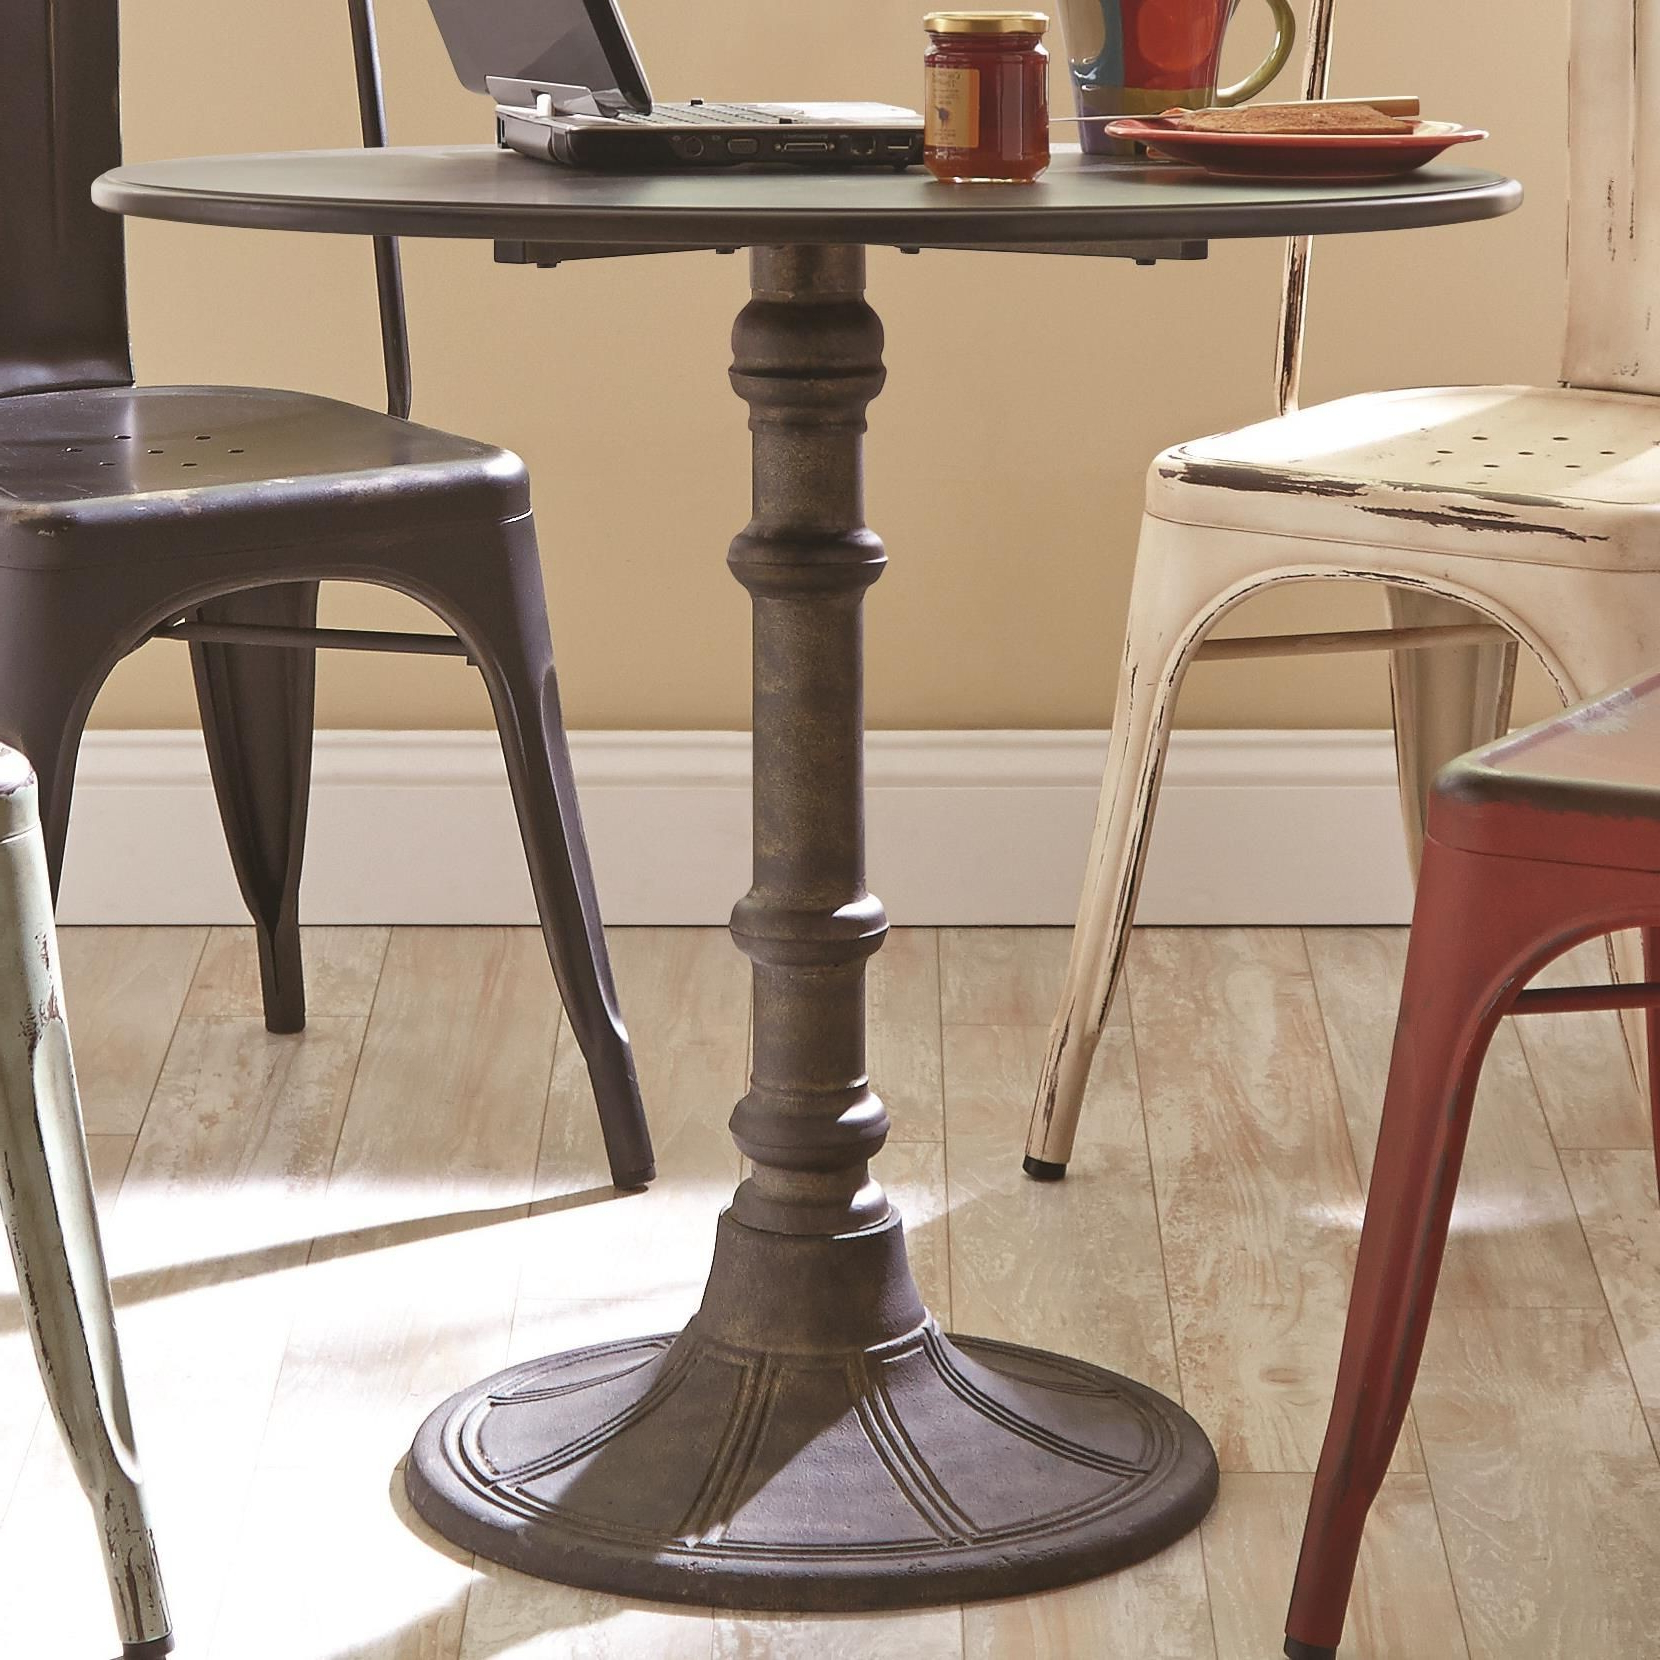 Preferred Oswego Industrial Round Bistro Pedestal Dining Table From Intended For Villani Pedestal Dining Tables (View 11 of 20)